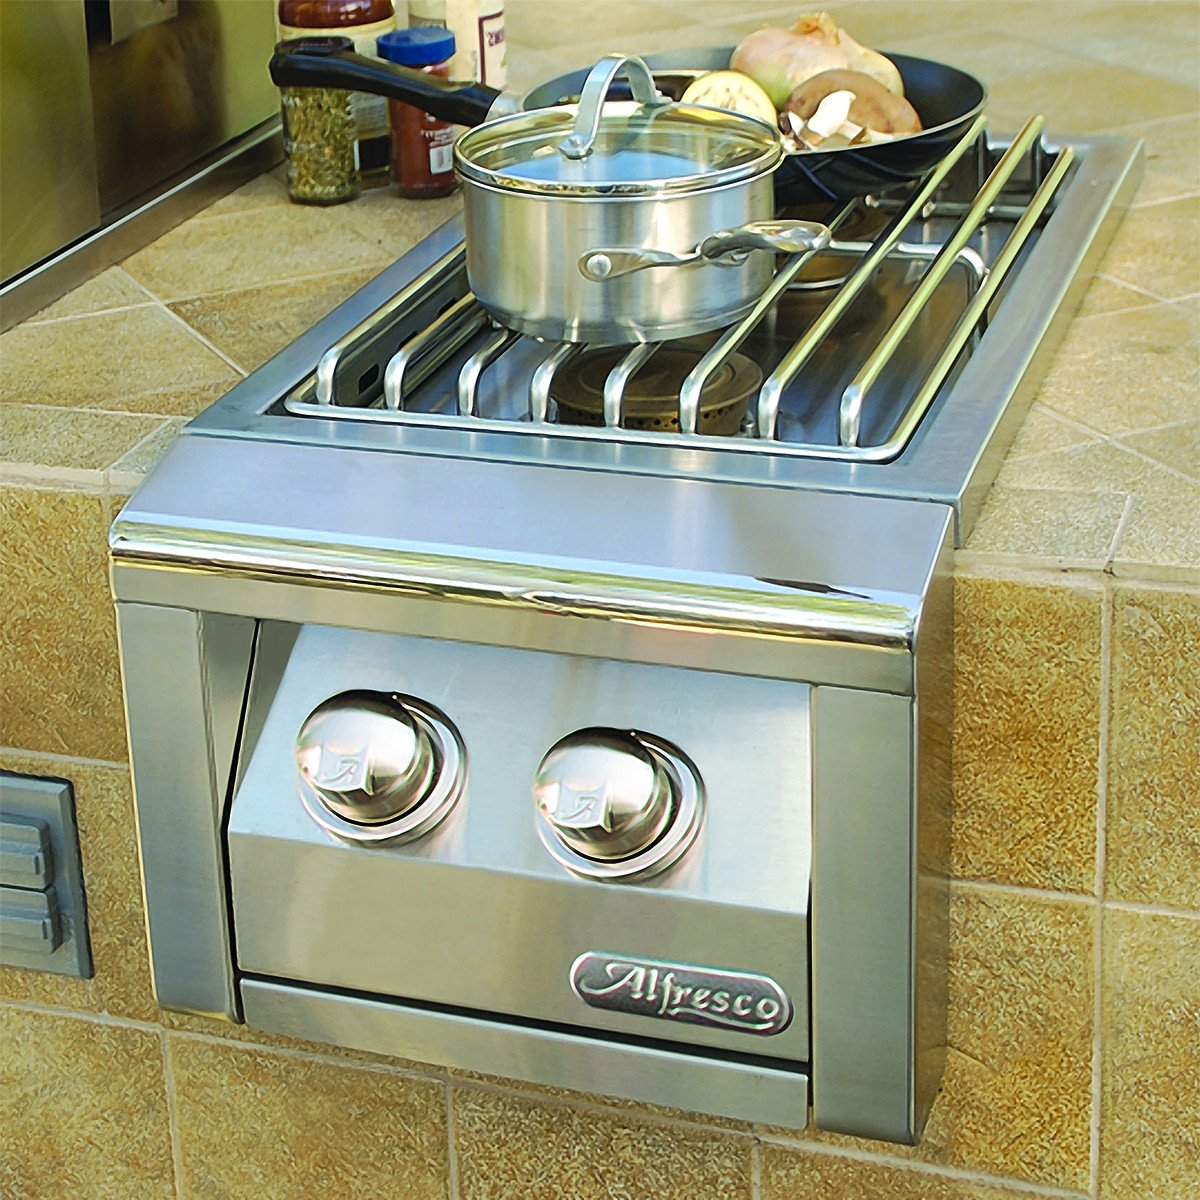 Alfresco Built-In Double Side Burner, Natural Gas